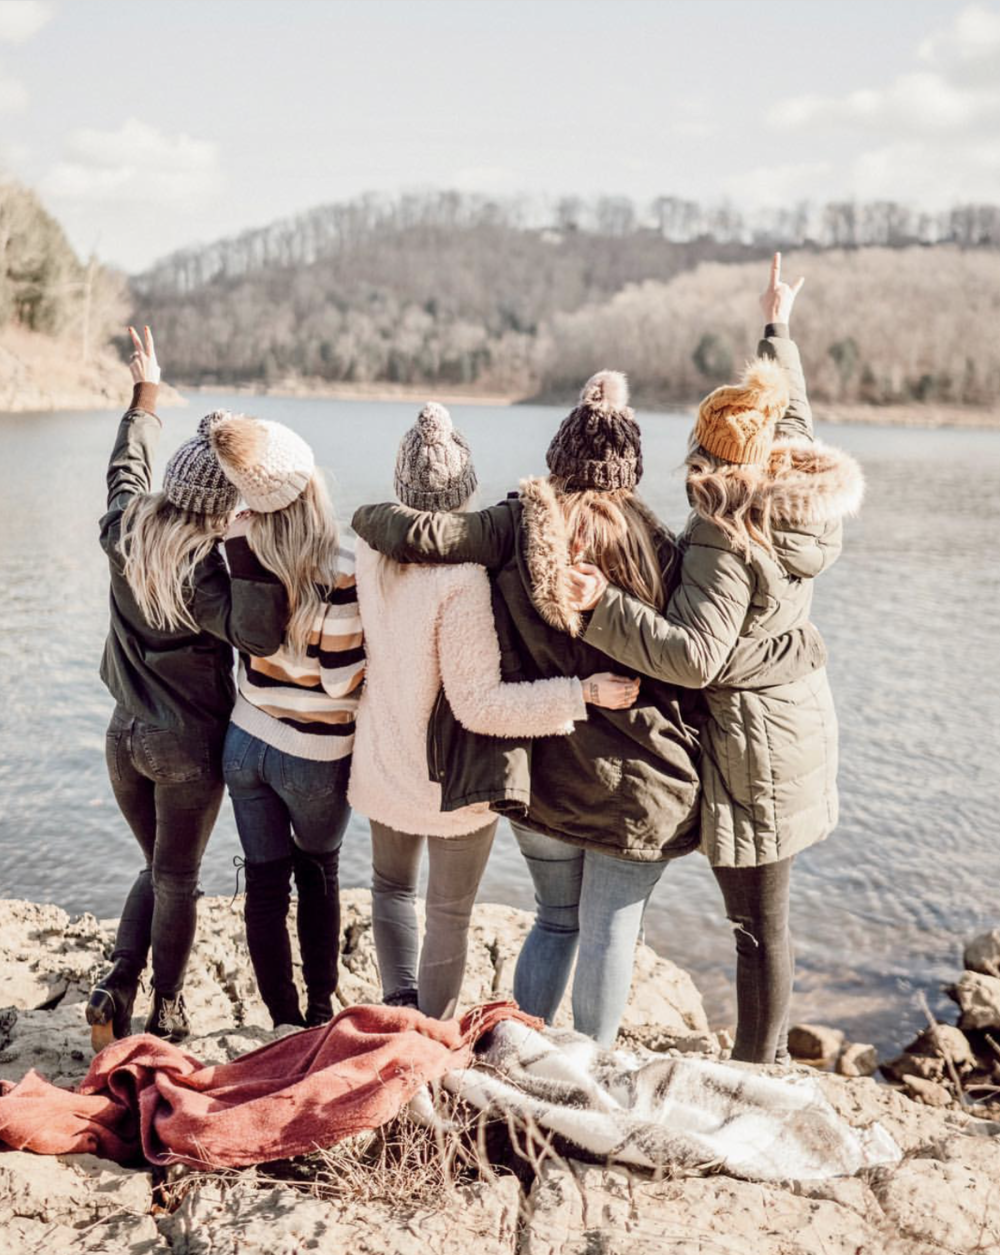 christmas-holiday-getaway-event-girls-trip-lake-womens-retreat-squad-goals-girl-power.jpg